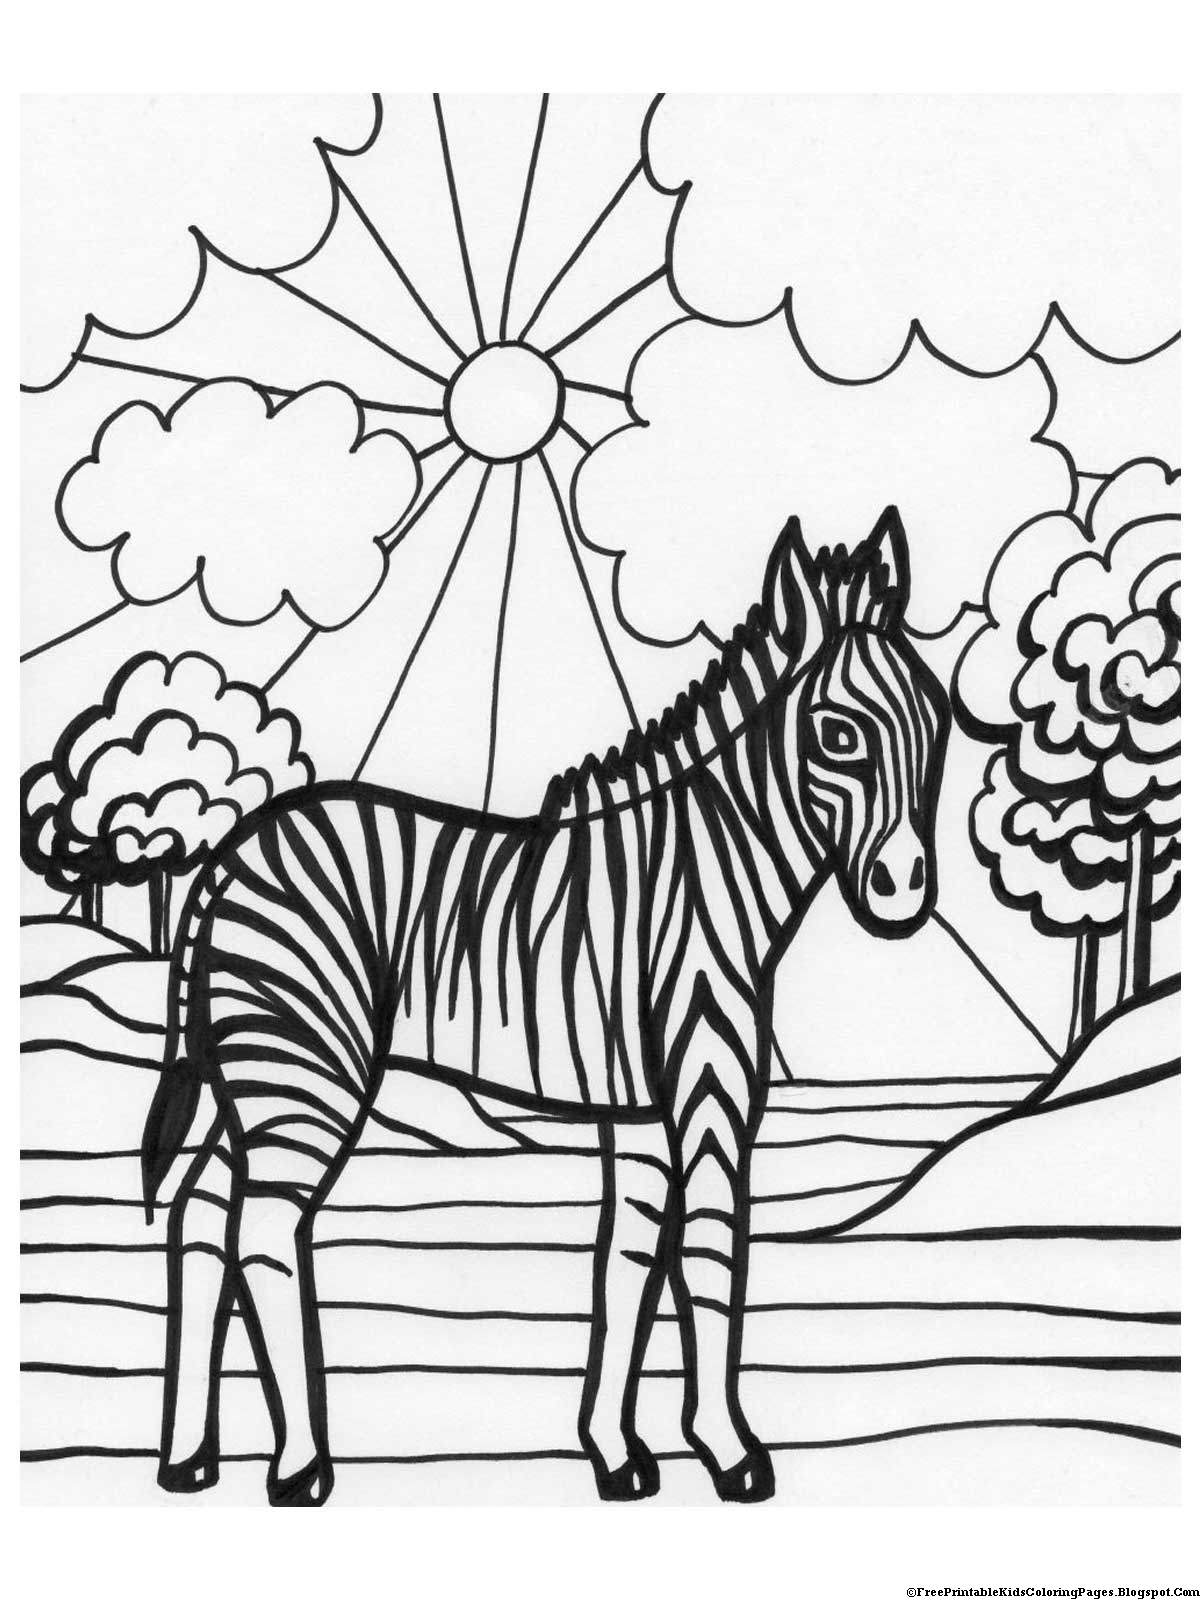 coloring images to print disney coloring pages best coloring pages for kids images to print coloring